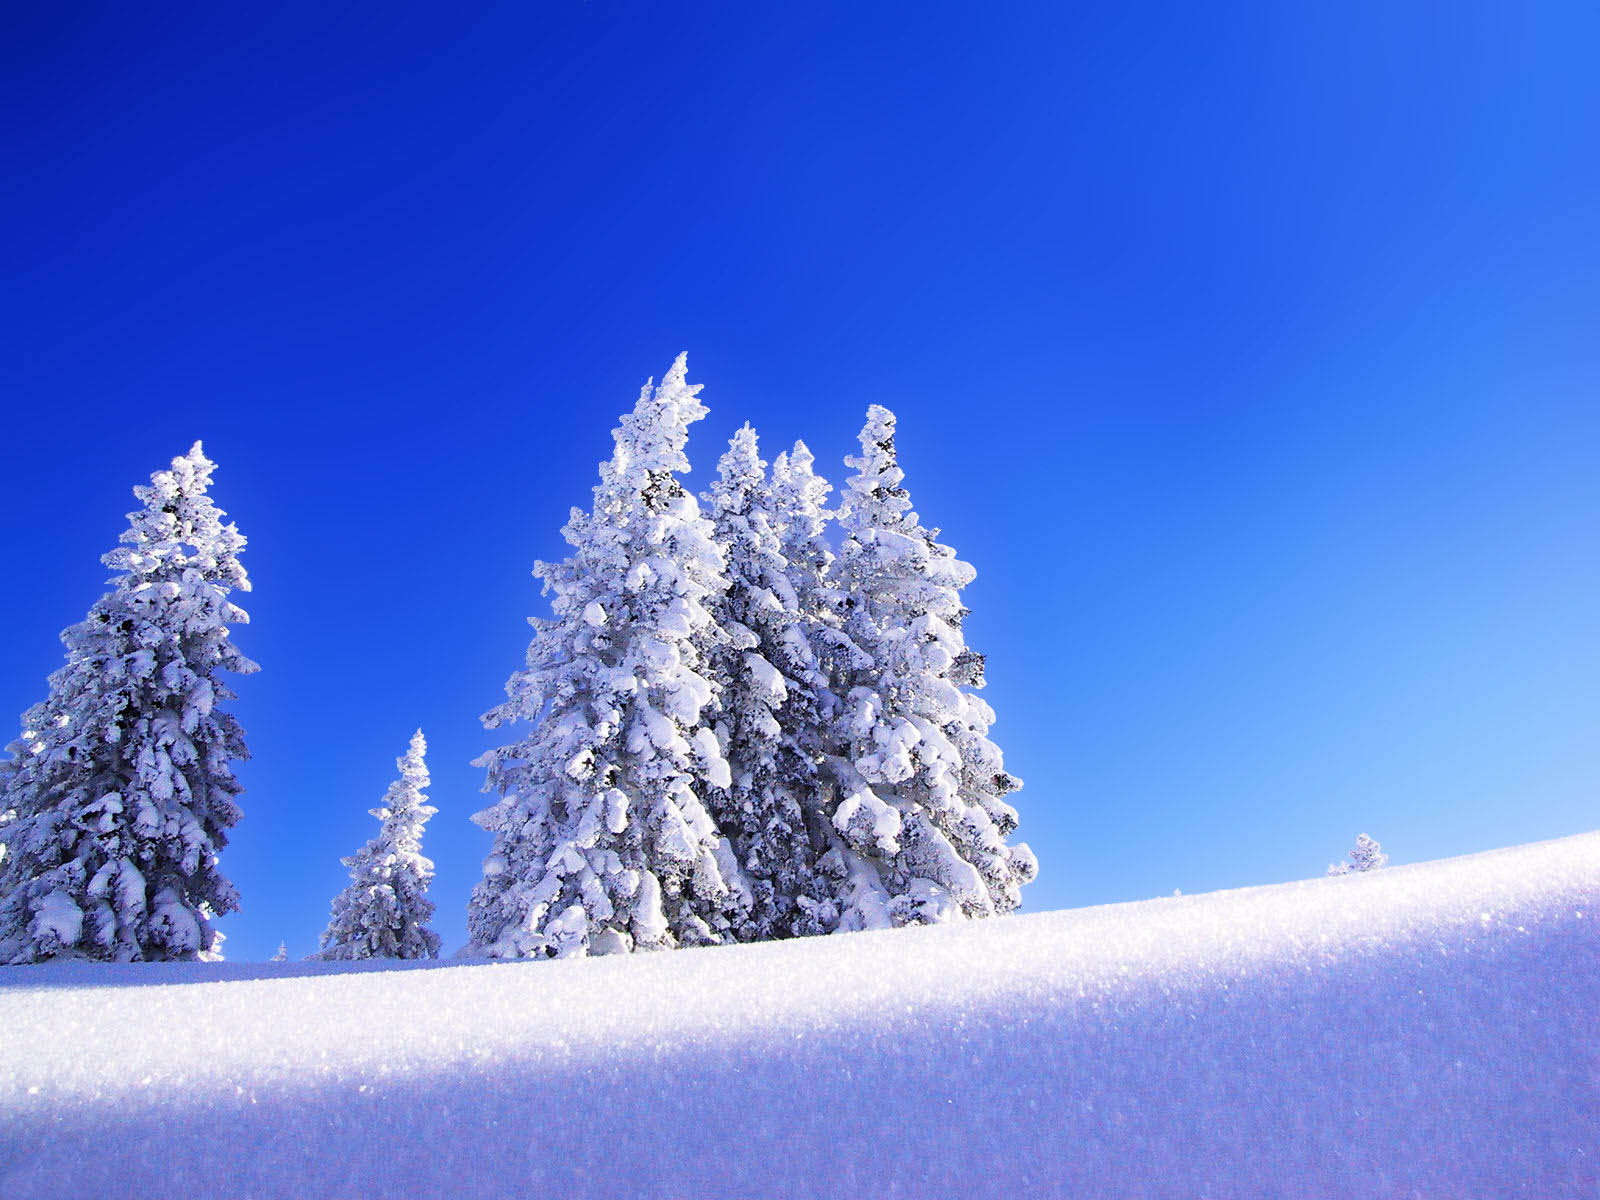 wallpapers Snow Wallpapers